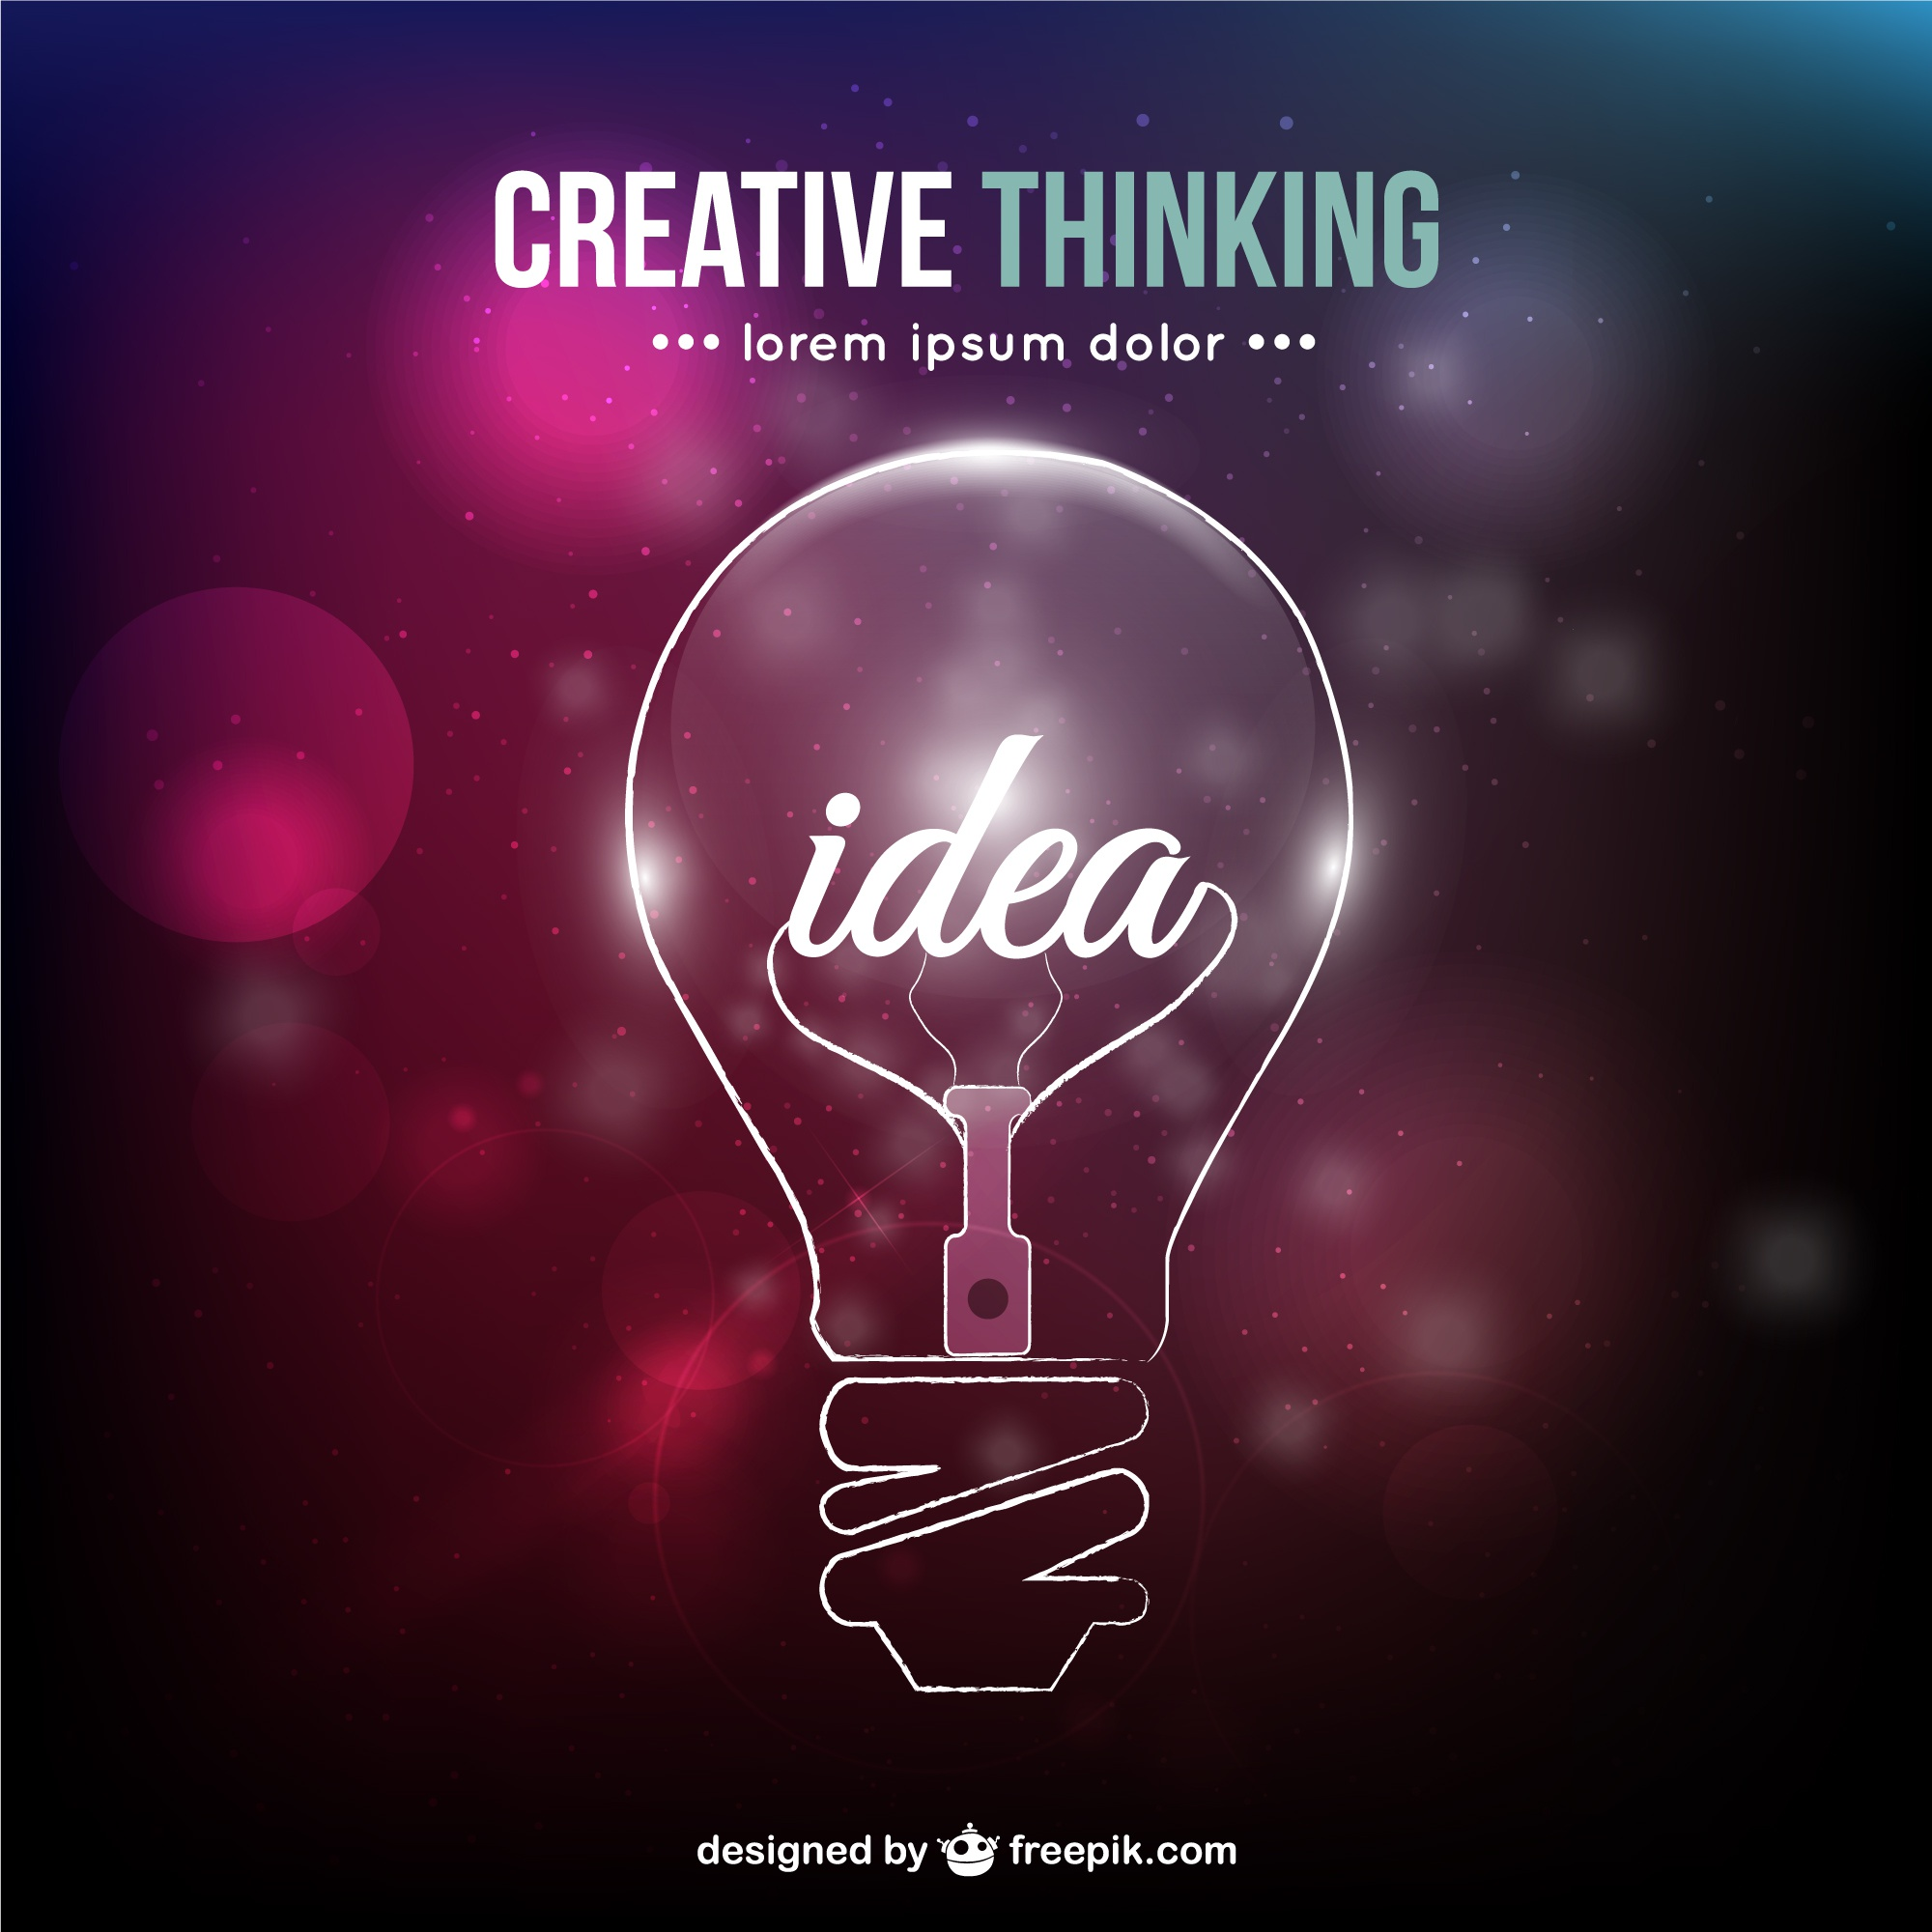 Creative thinking conceptual vector